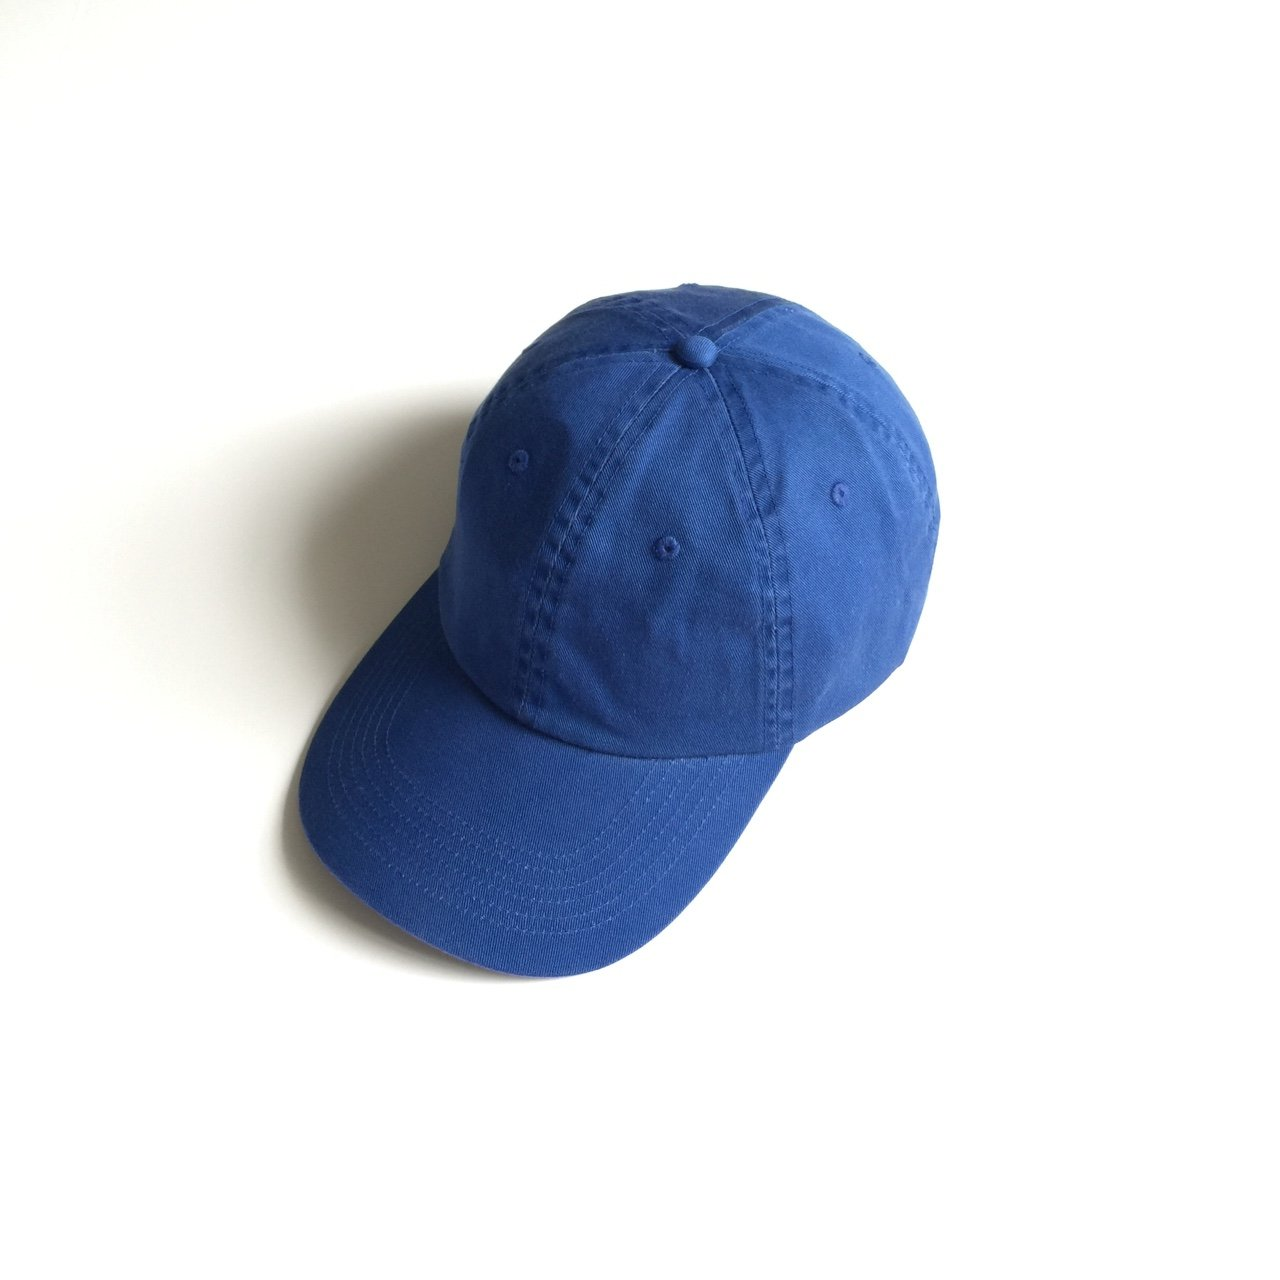 7b7d434f901 Deadstock plain Monocromatic blue Dad strapback Hat Awesome - Depop